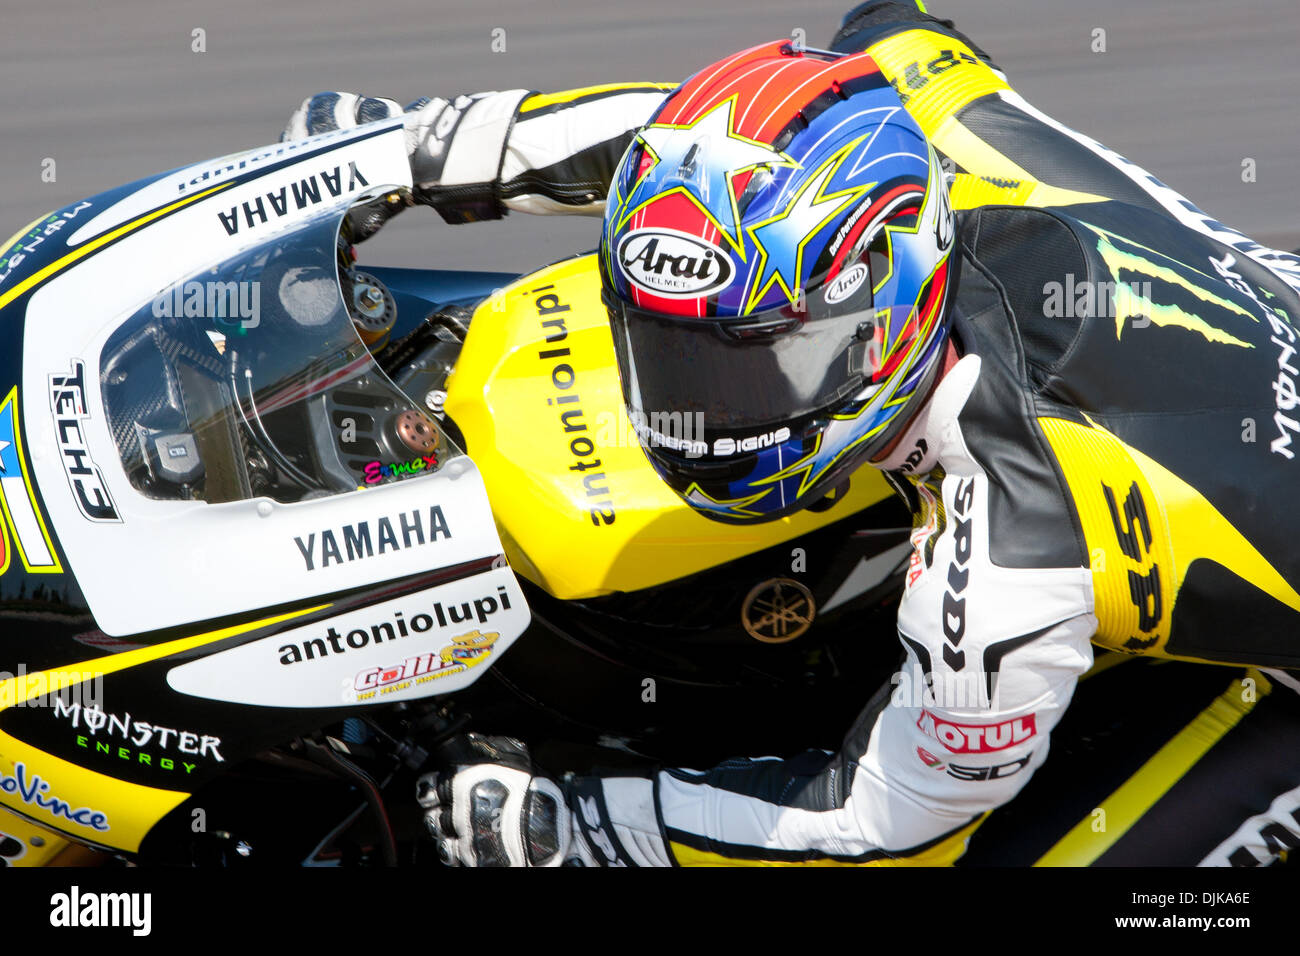 Sep. 03, 2010 - Misano Adriatico, Italy - Yamaha Tech 3 rider Colin Edwards (USA #5) during the first MotoGp practice session for the San Marino GP in Misano Adriatico, Italy. Edwards finished the practice at the 5th place. (Credit Image: © Andrea Ranalli/Southcreek Global/ZUMApress.com) - Stock Image